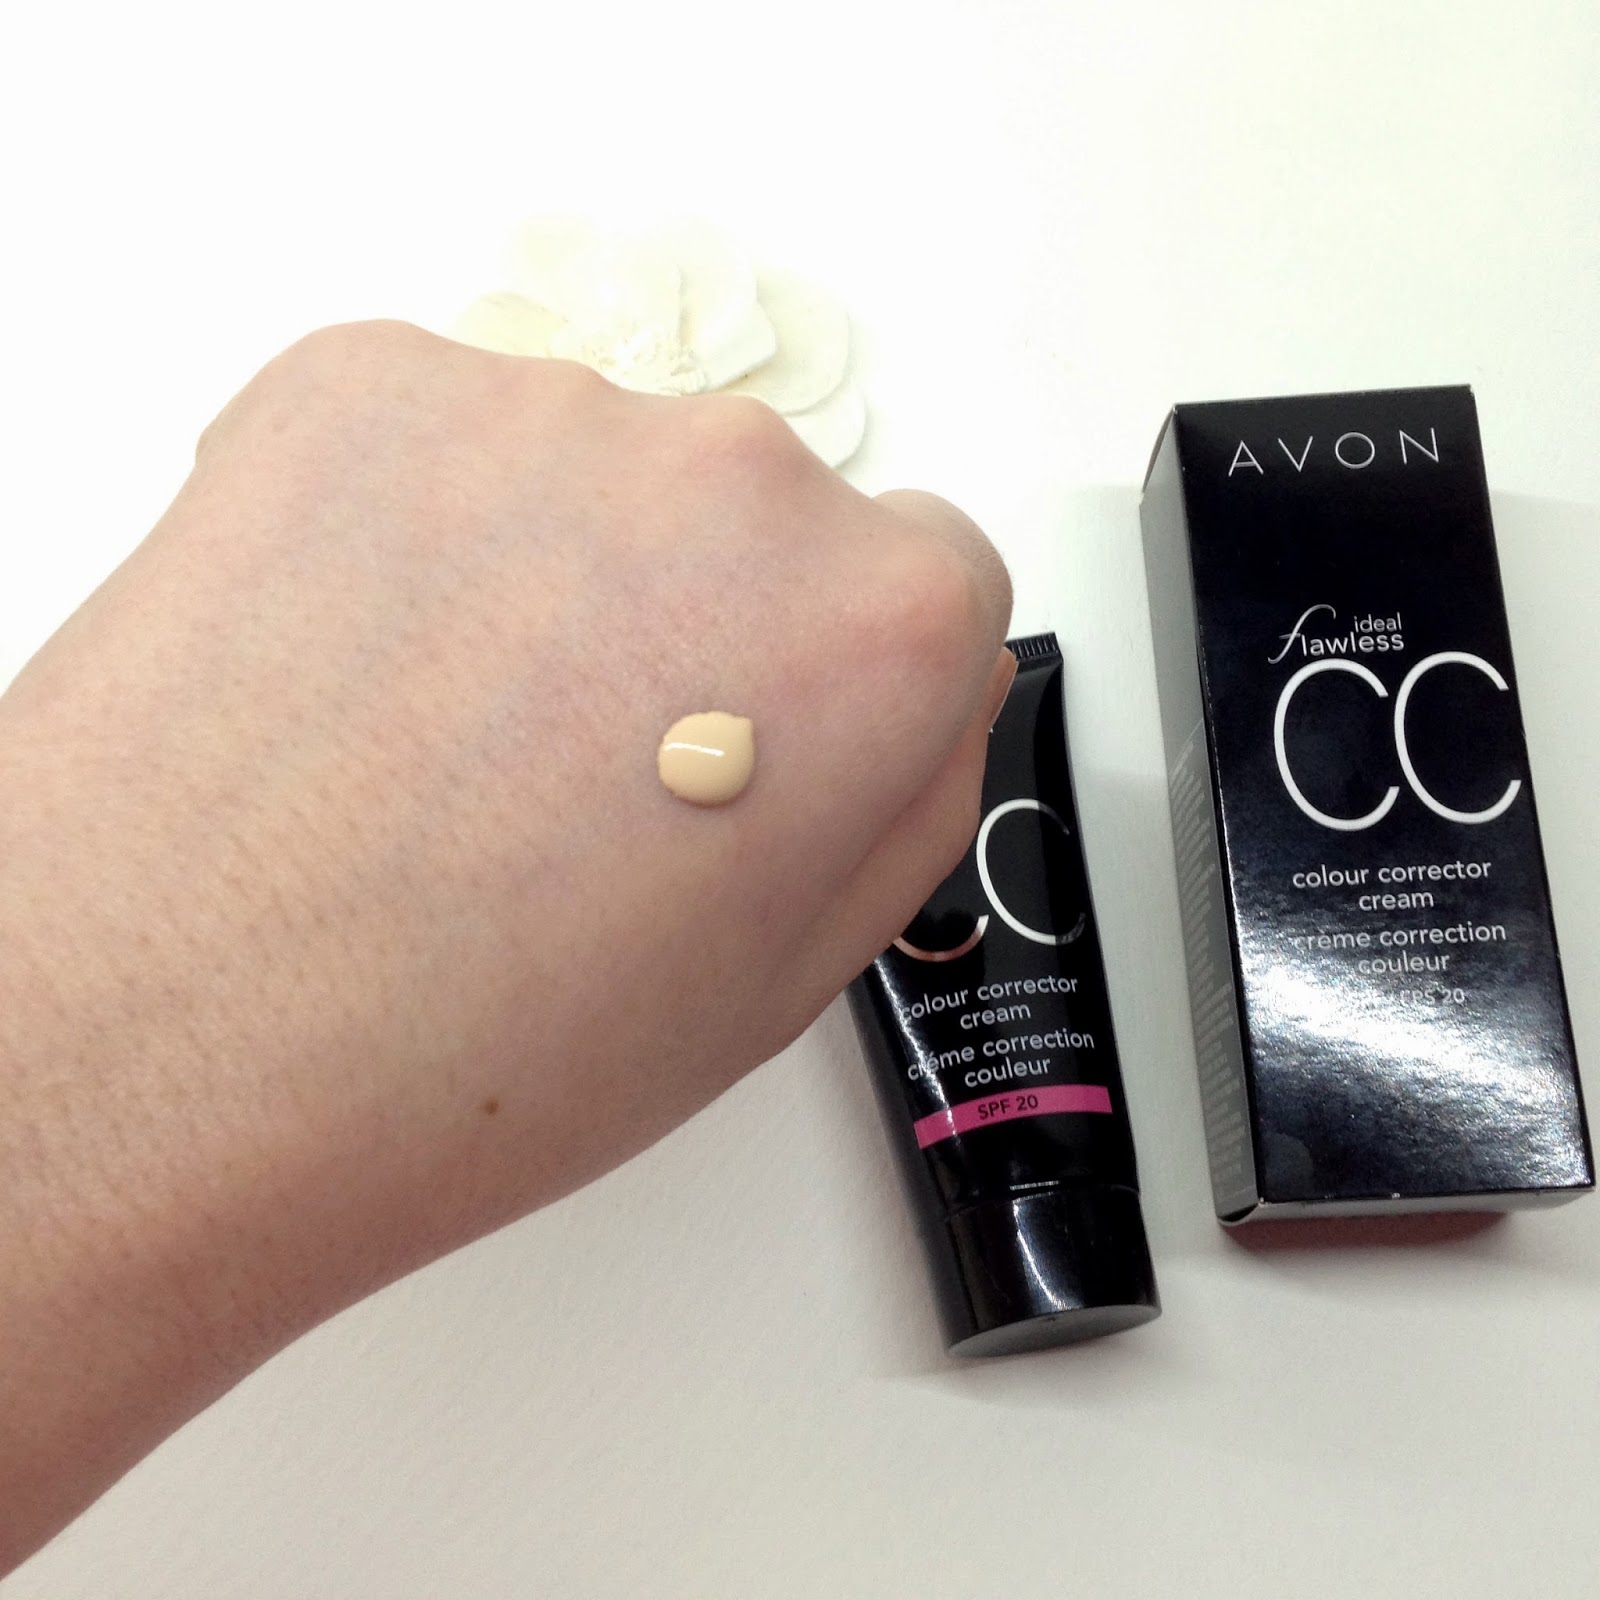 New Avon Ideal Flawless CC color corrector cream SPF20 отзывы